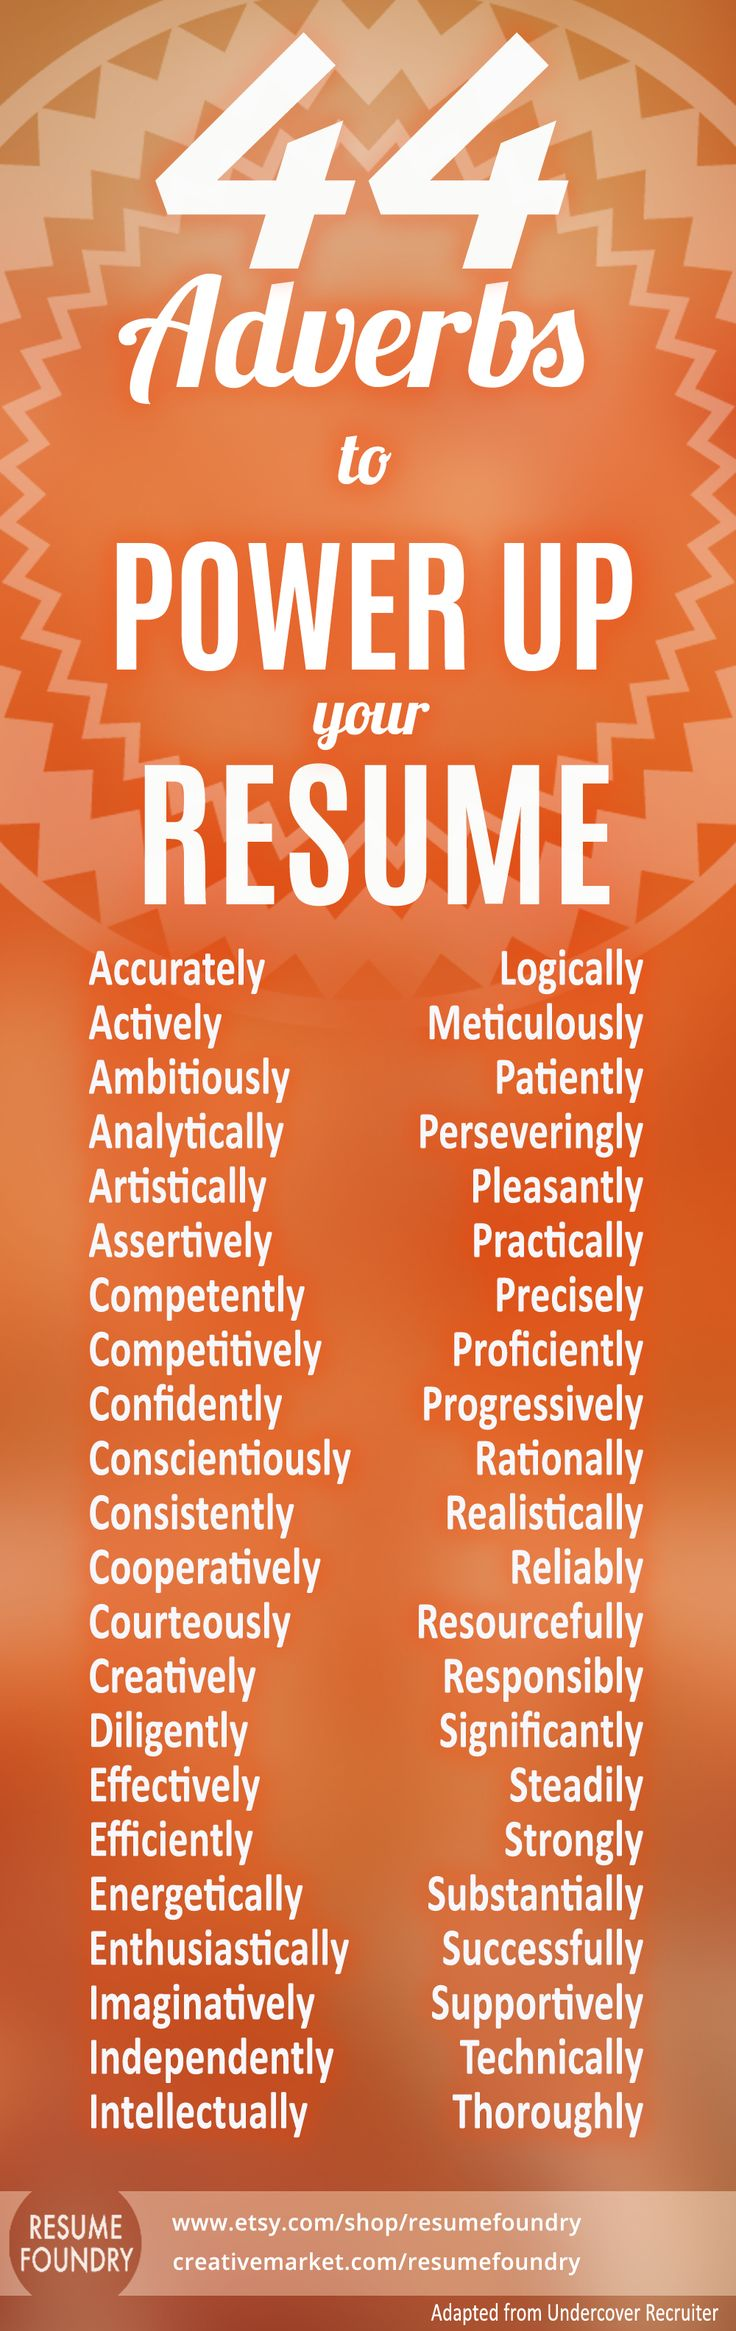 44 Adverbs to Power-UP your Resume. Resume tips. Resume keywords.